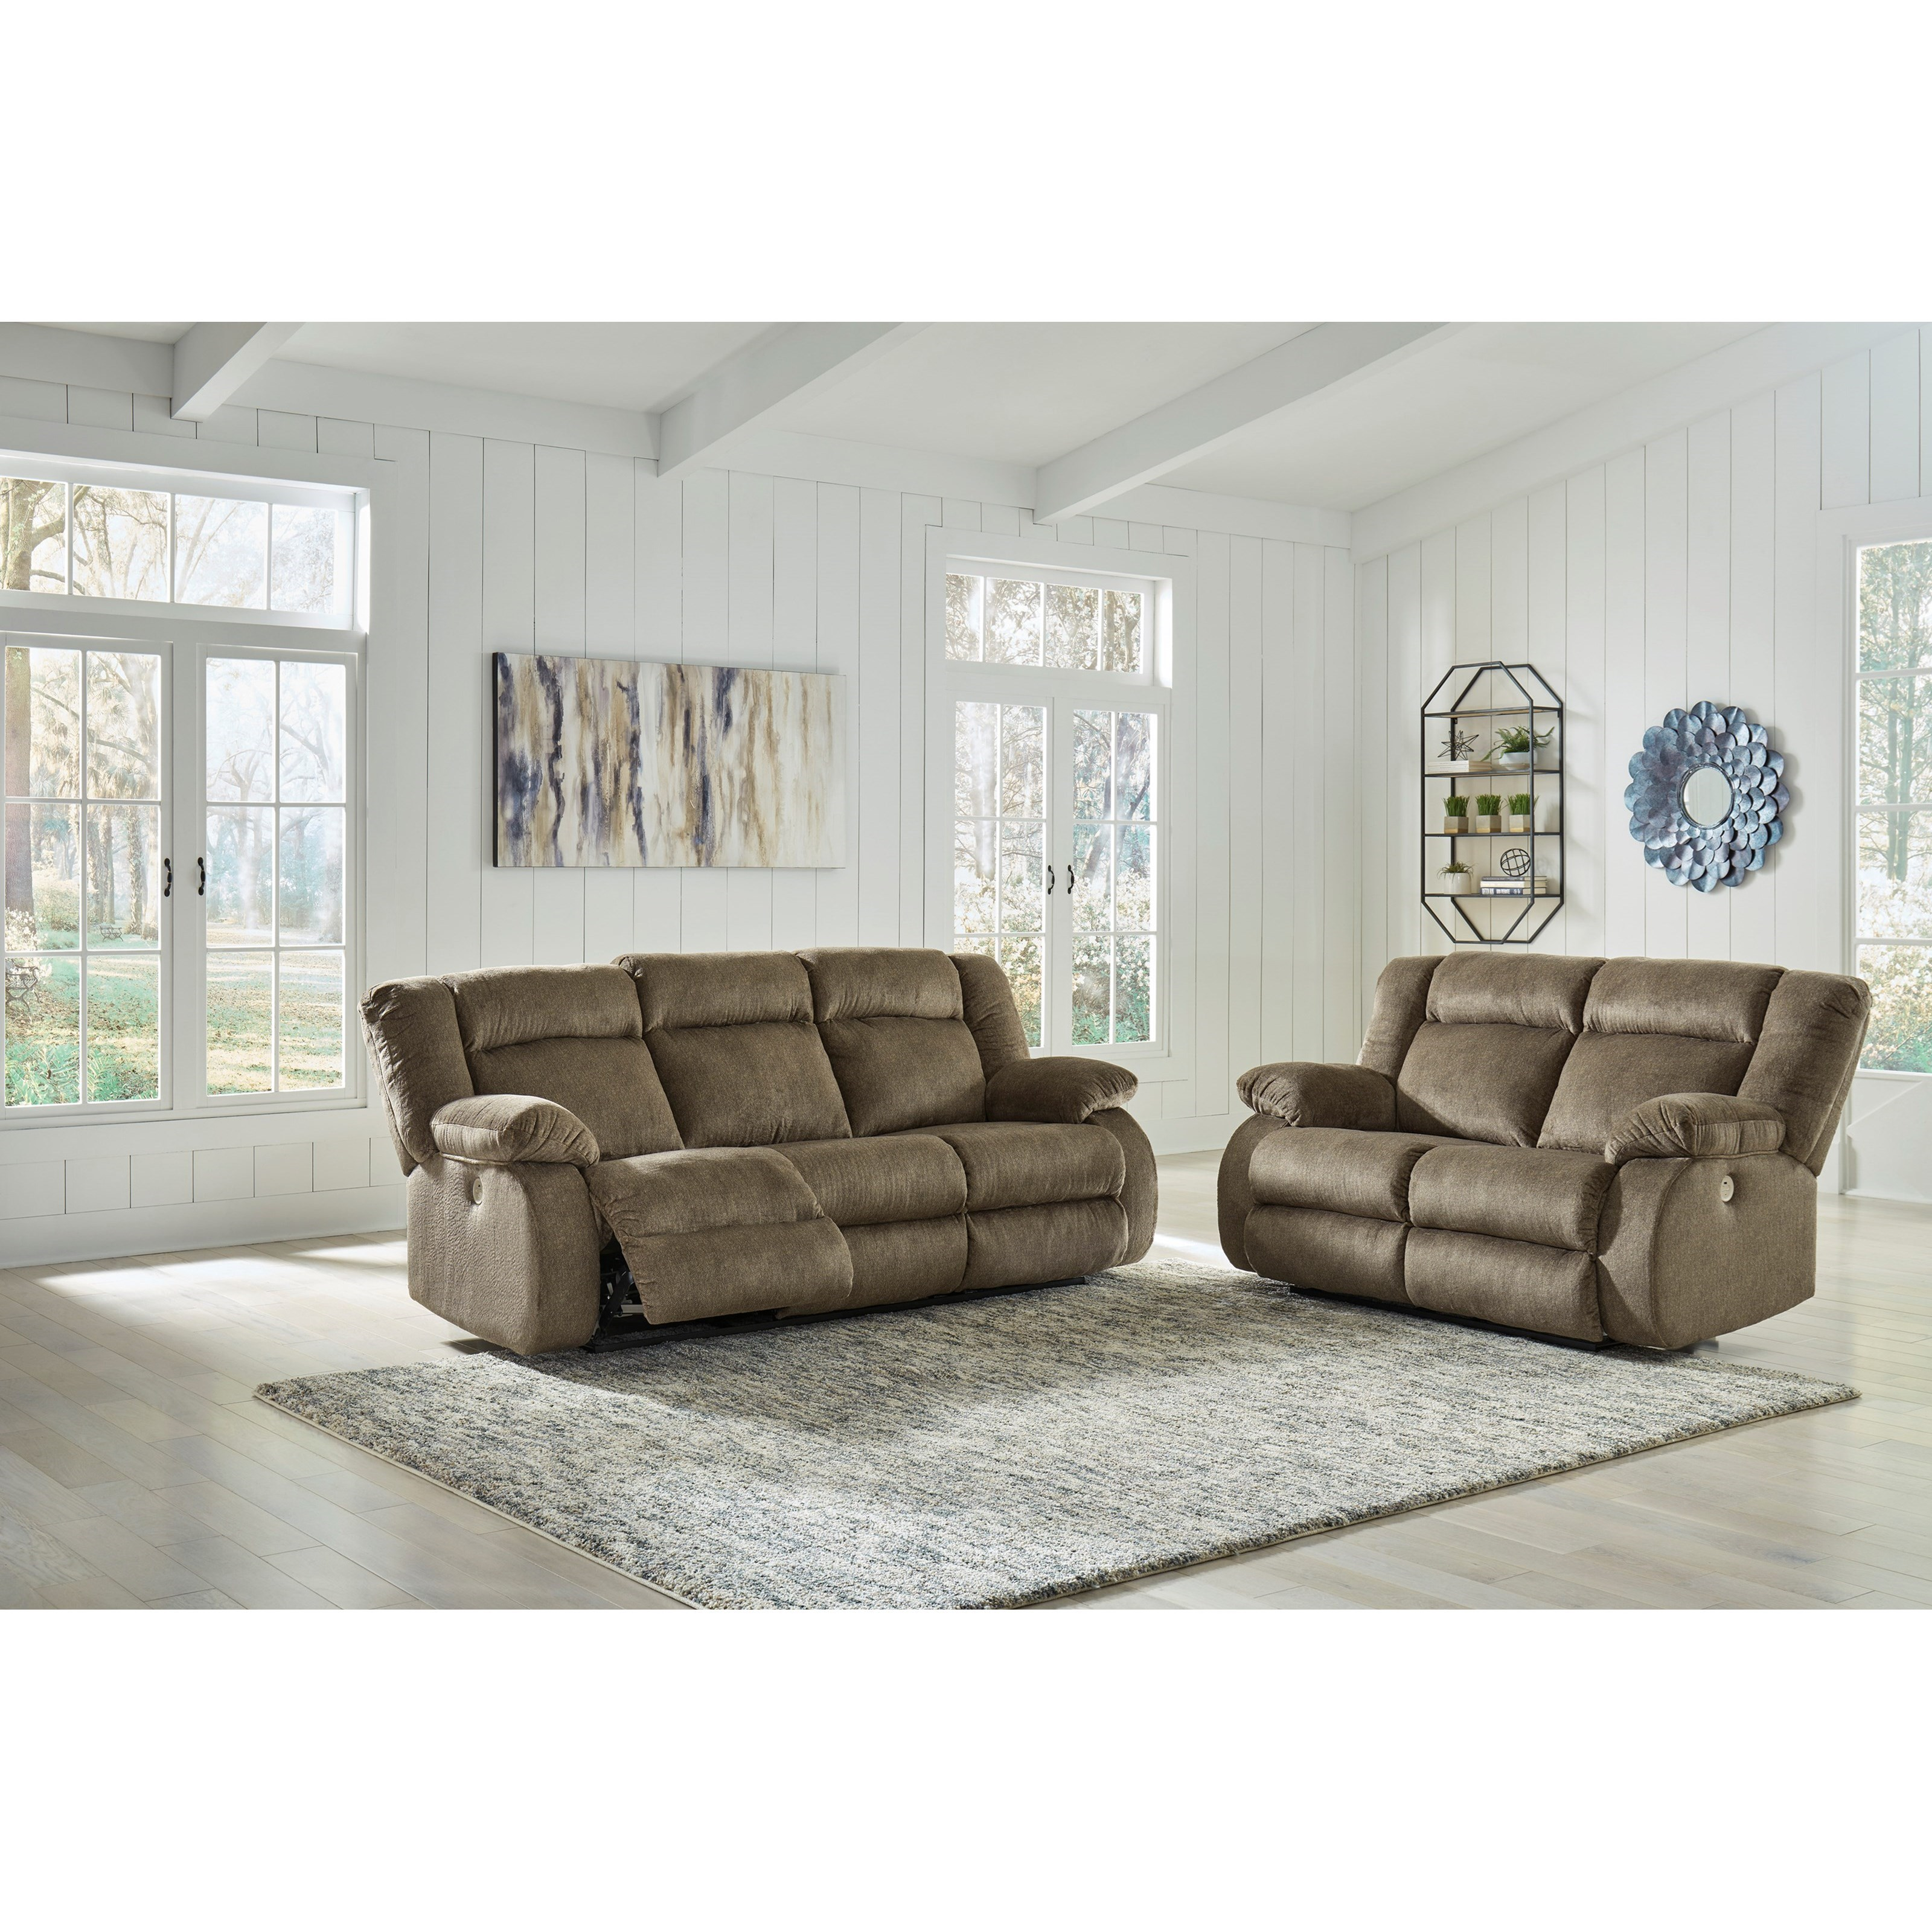 Burkner Power Reclining Living Room Group by Ashley (Signature Design) at Johnny Janosik